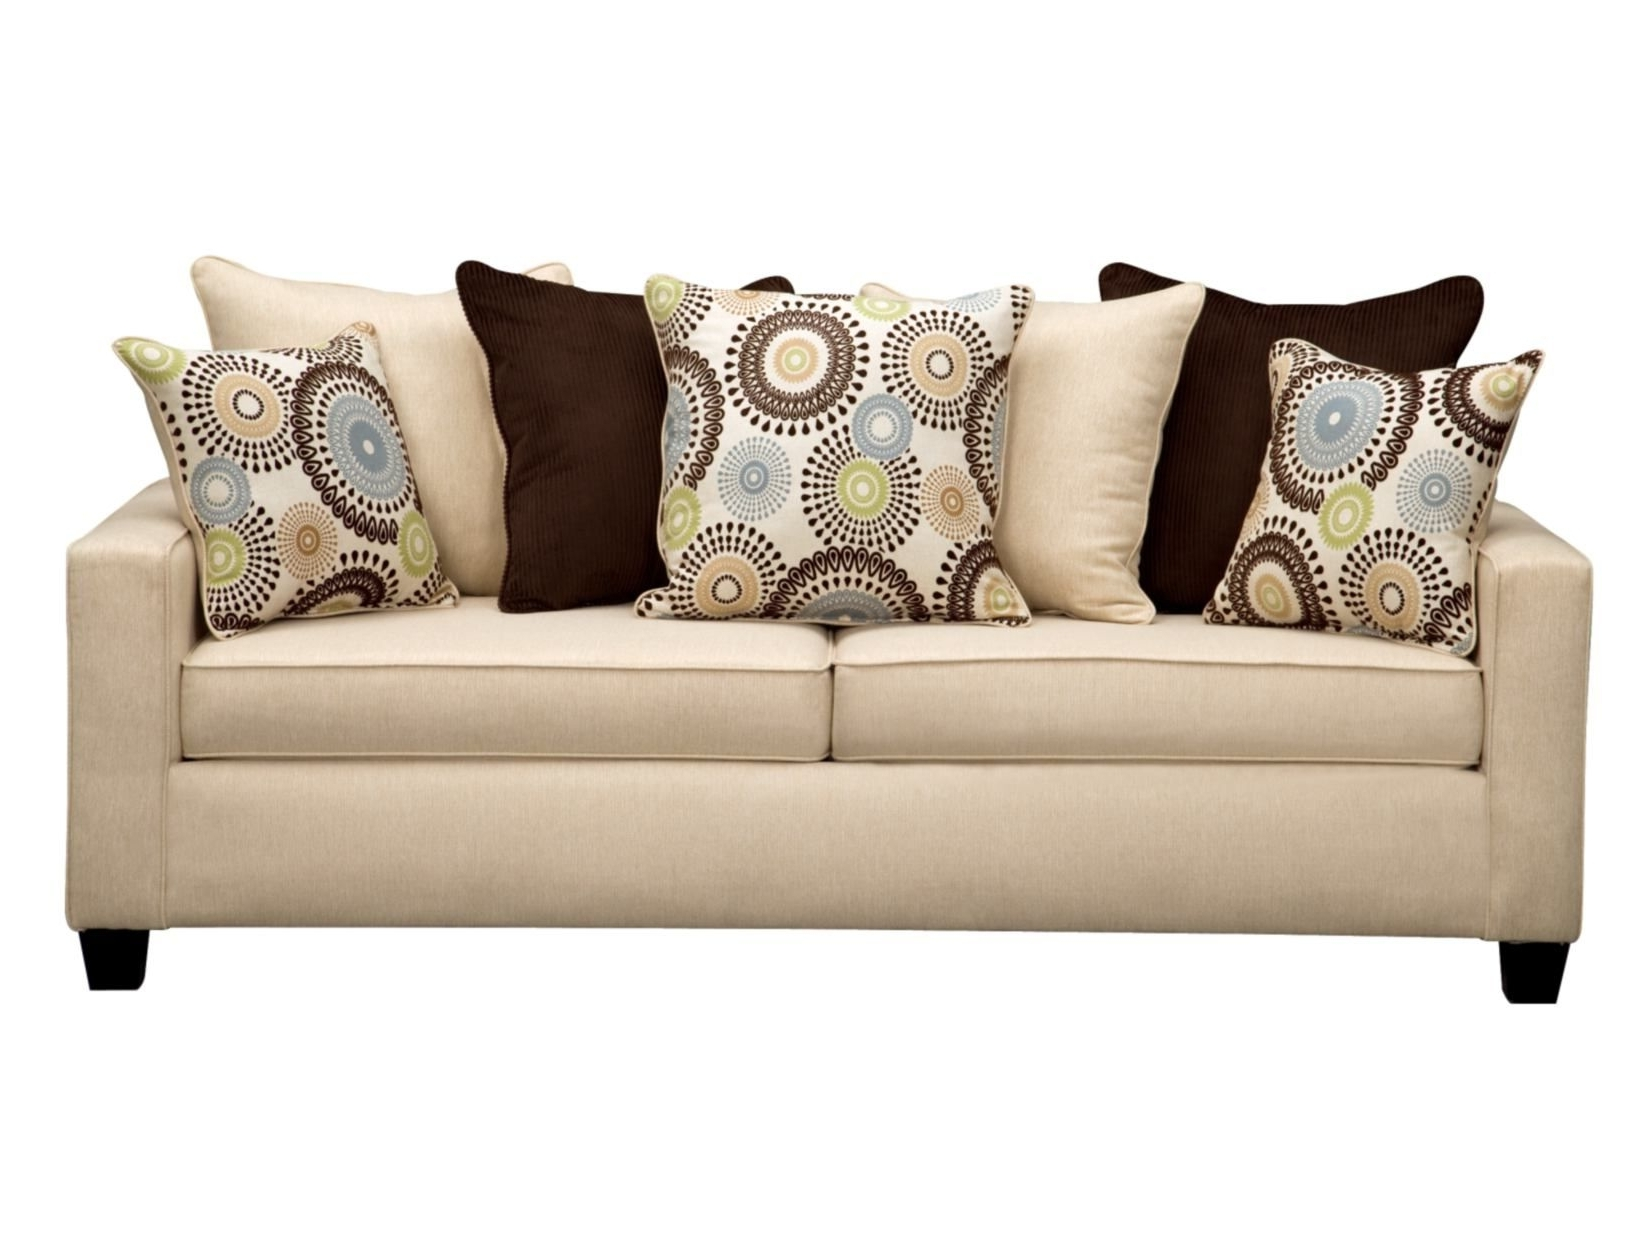 Best And Newest Value City Sofas In Stoked Cream Sofa – Value City Furniture (View 3 of 20)